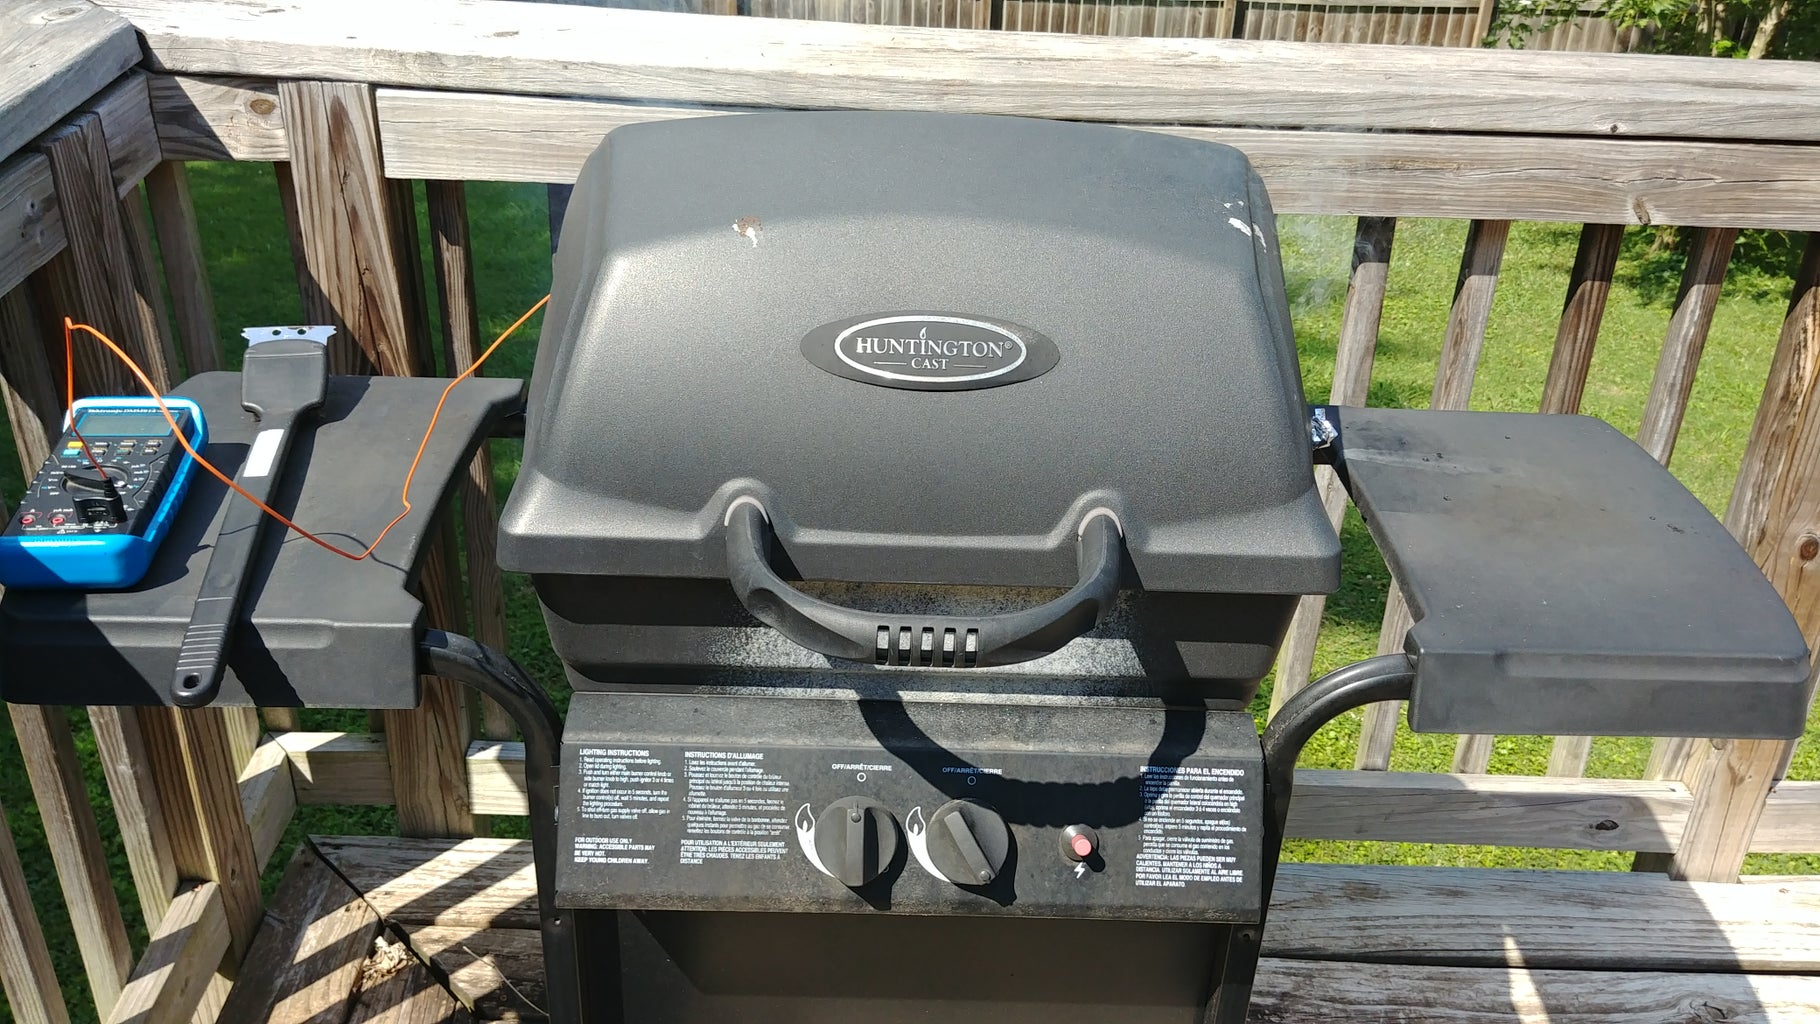 Know Your Grill!